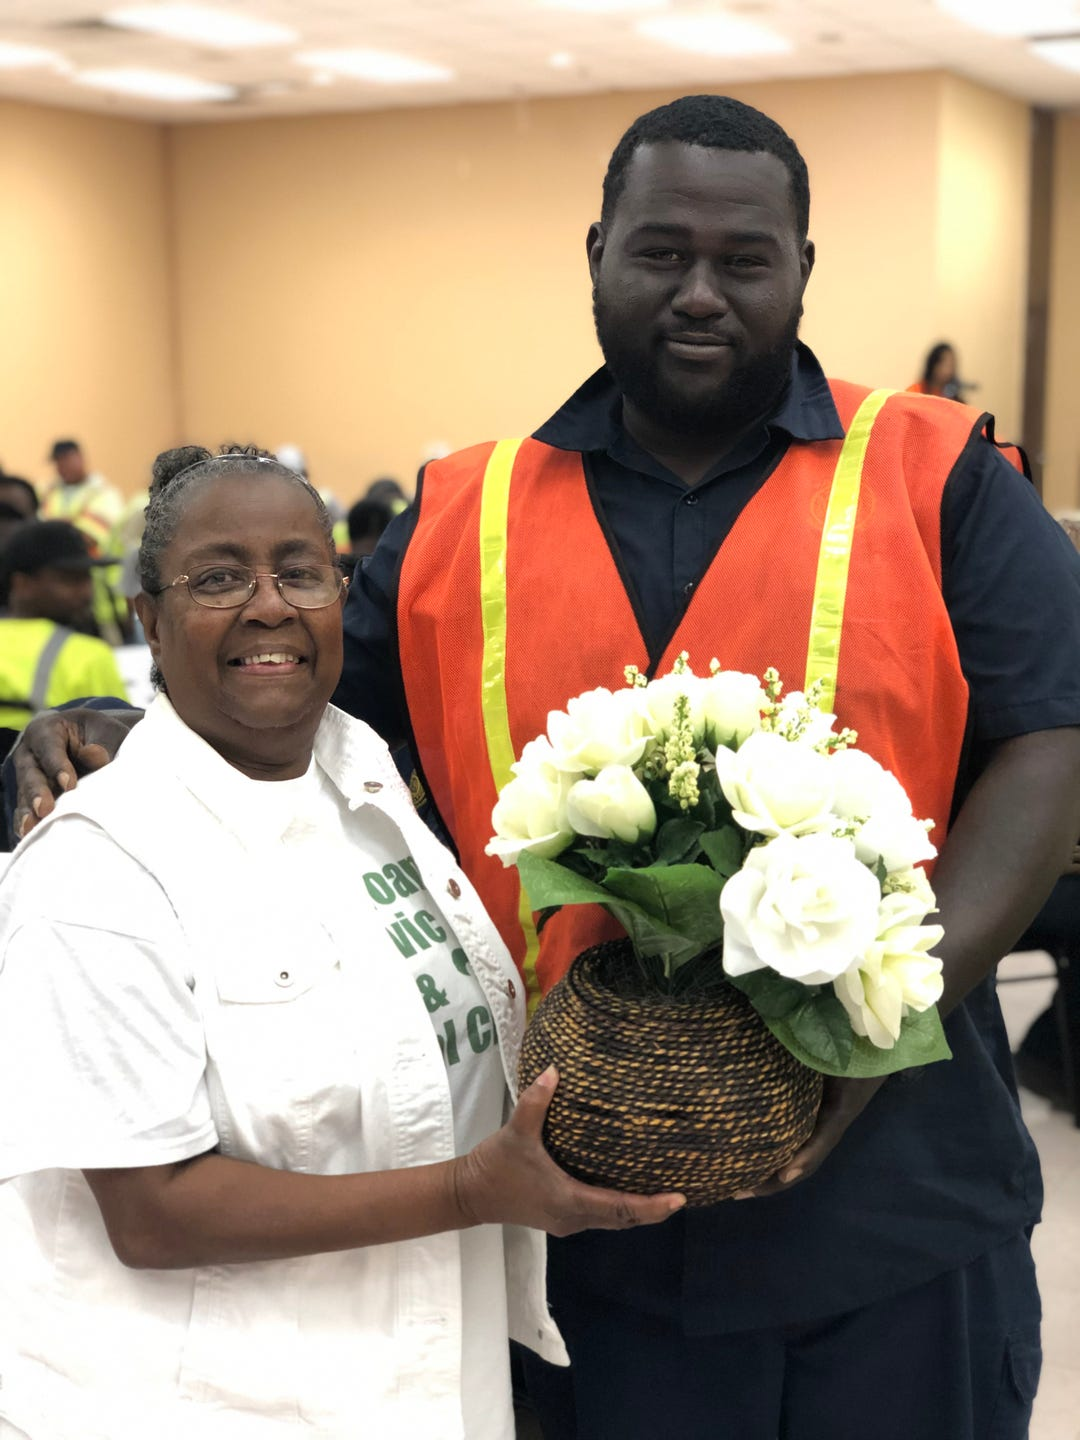 Monroe Sanitation Workers were awarded door prizes provided by local businesses at an event sponsored by the Samoan Civic & Social Club and Allen Green Williamson LLP for National Garbage Man Day.